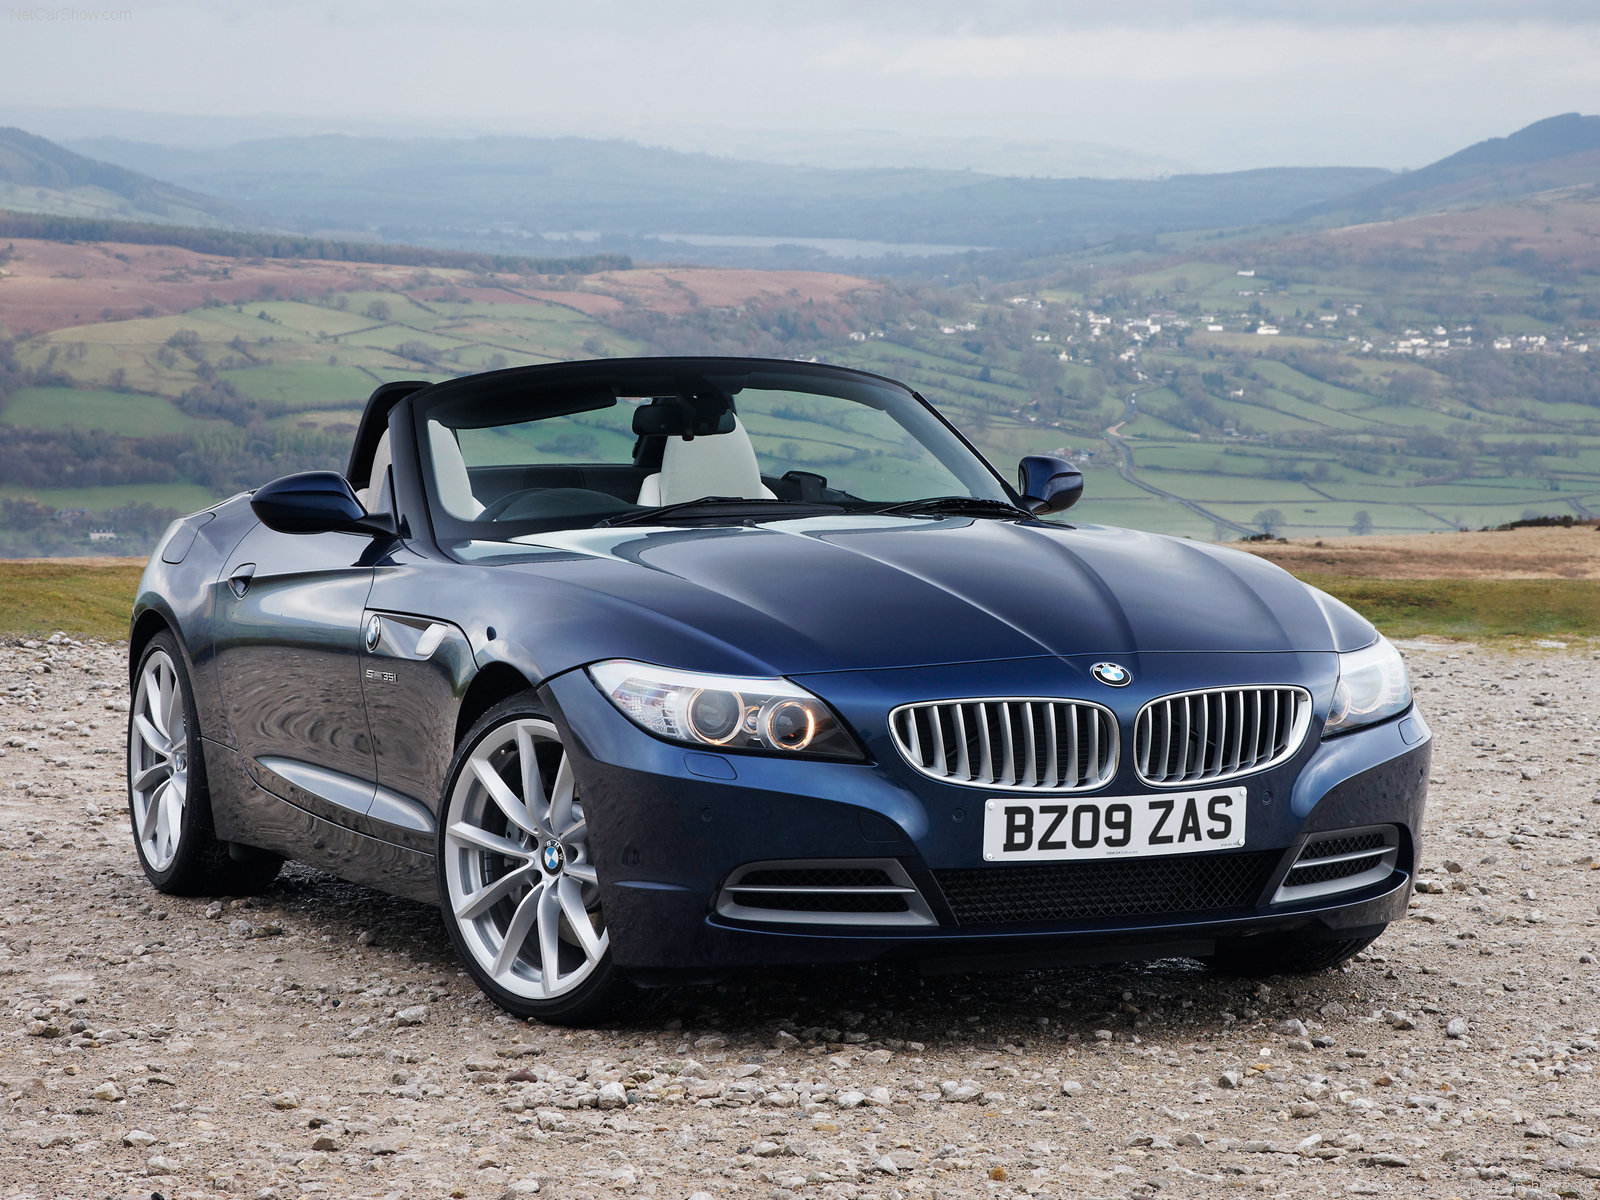 2015 BMW Z4: MORE POWERFUL AND SPACIOUS - Image #18